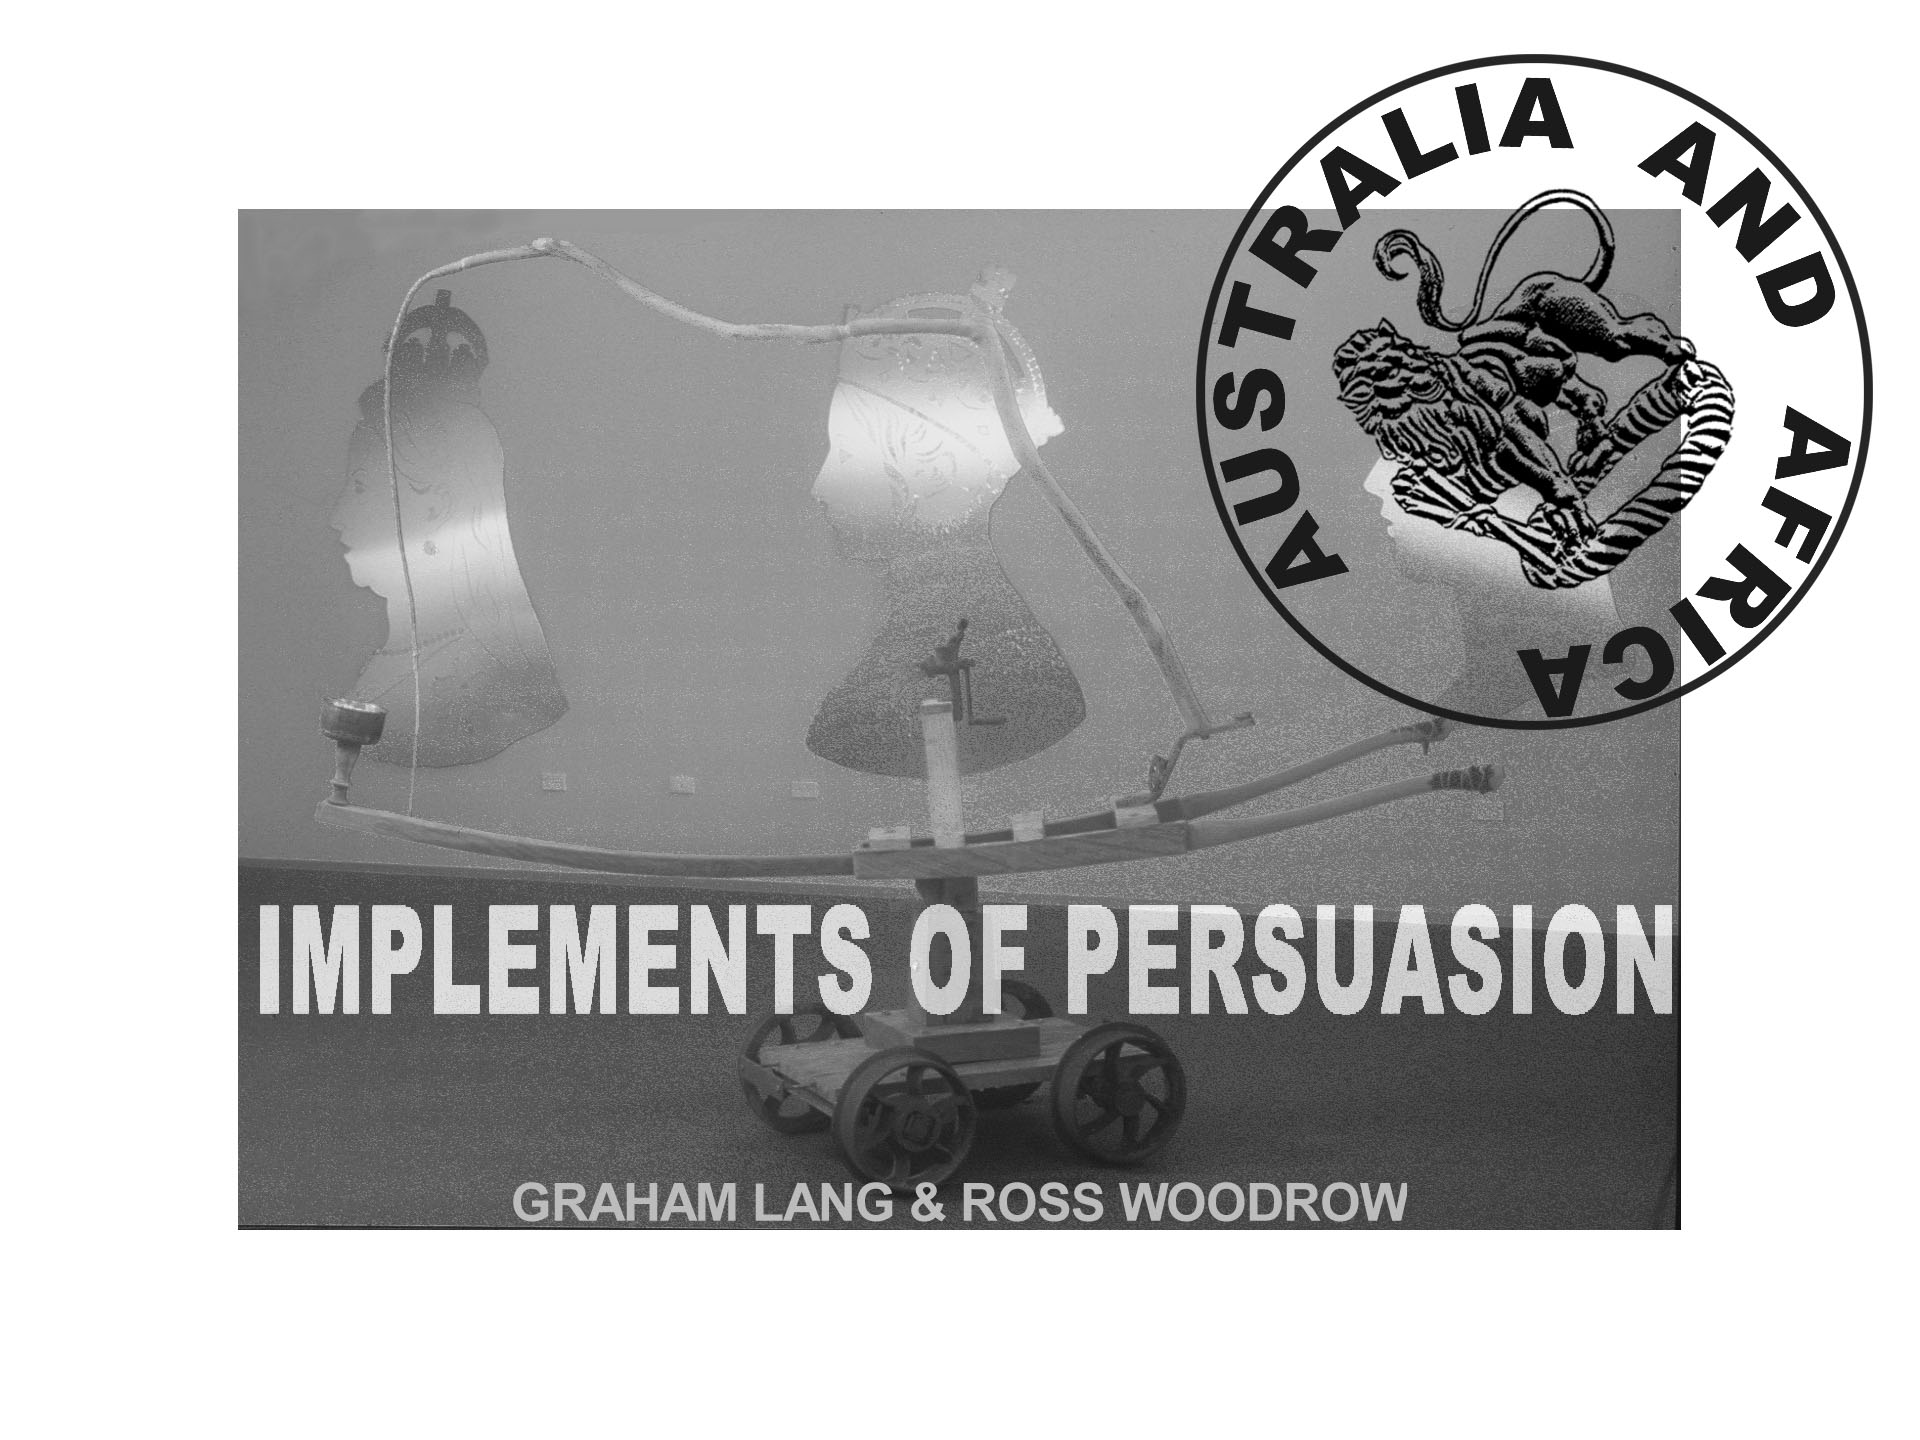 - IN 2001, a version of this exhibition was taken to the Broken Hill City Art Gallery under the title: IMPLEMENTS OF PERSUASION: the shared history of British conquest in Africa and Australia.Works by Graham Lang and Ross Woodrow.Opening: Broken Hill City Art Gallery Thursday 10th May, 7.00 p.m.Exhibition dates: May 10 to June 7, 2001. [This was the old Gallery venue: Broken Hill City Art Gallery Cnr Blende & Chloride Sts.]